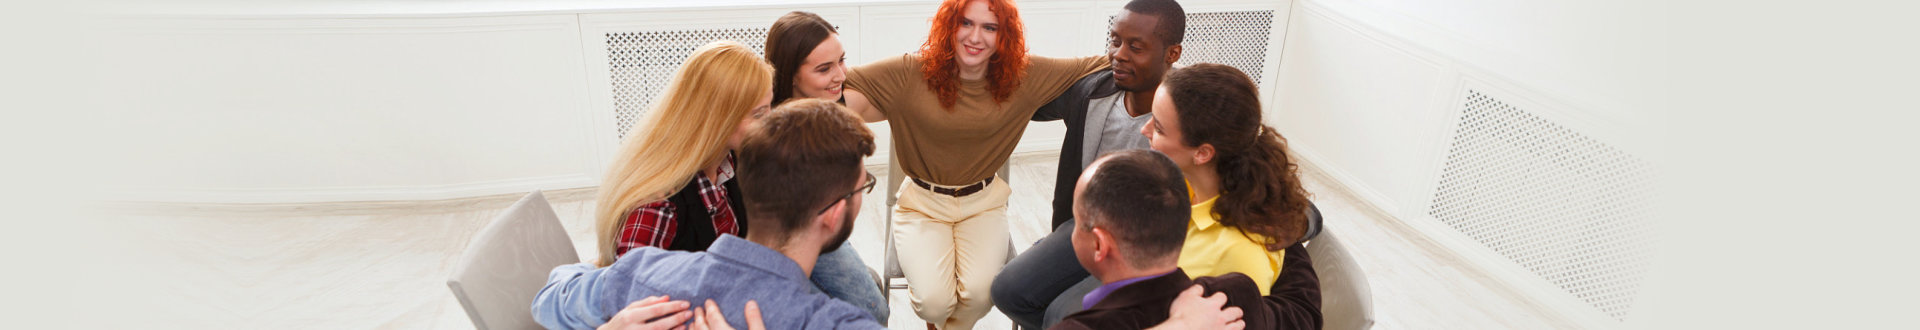 group of people holding together on therapy session